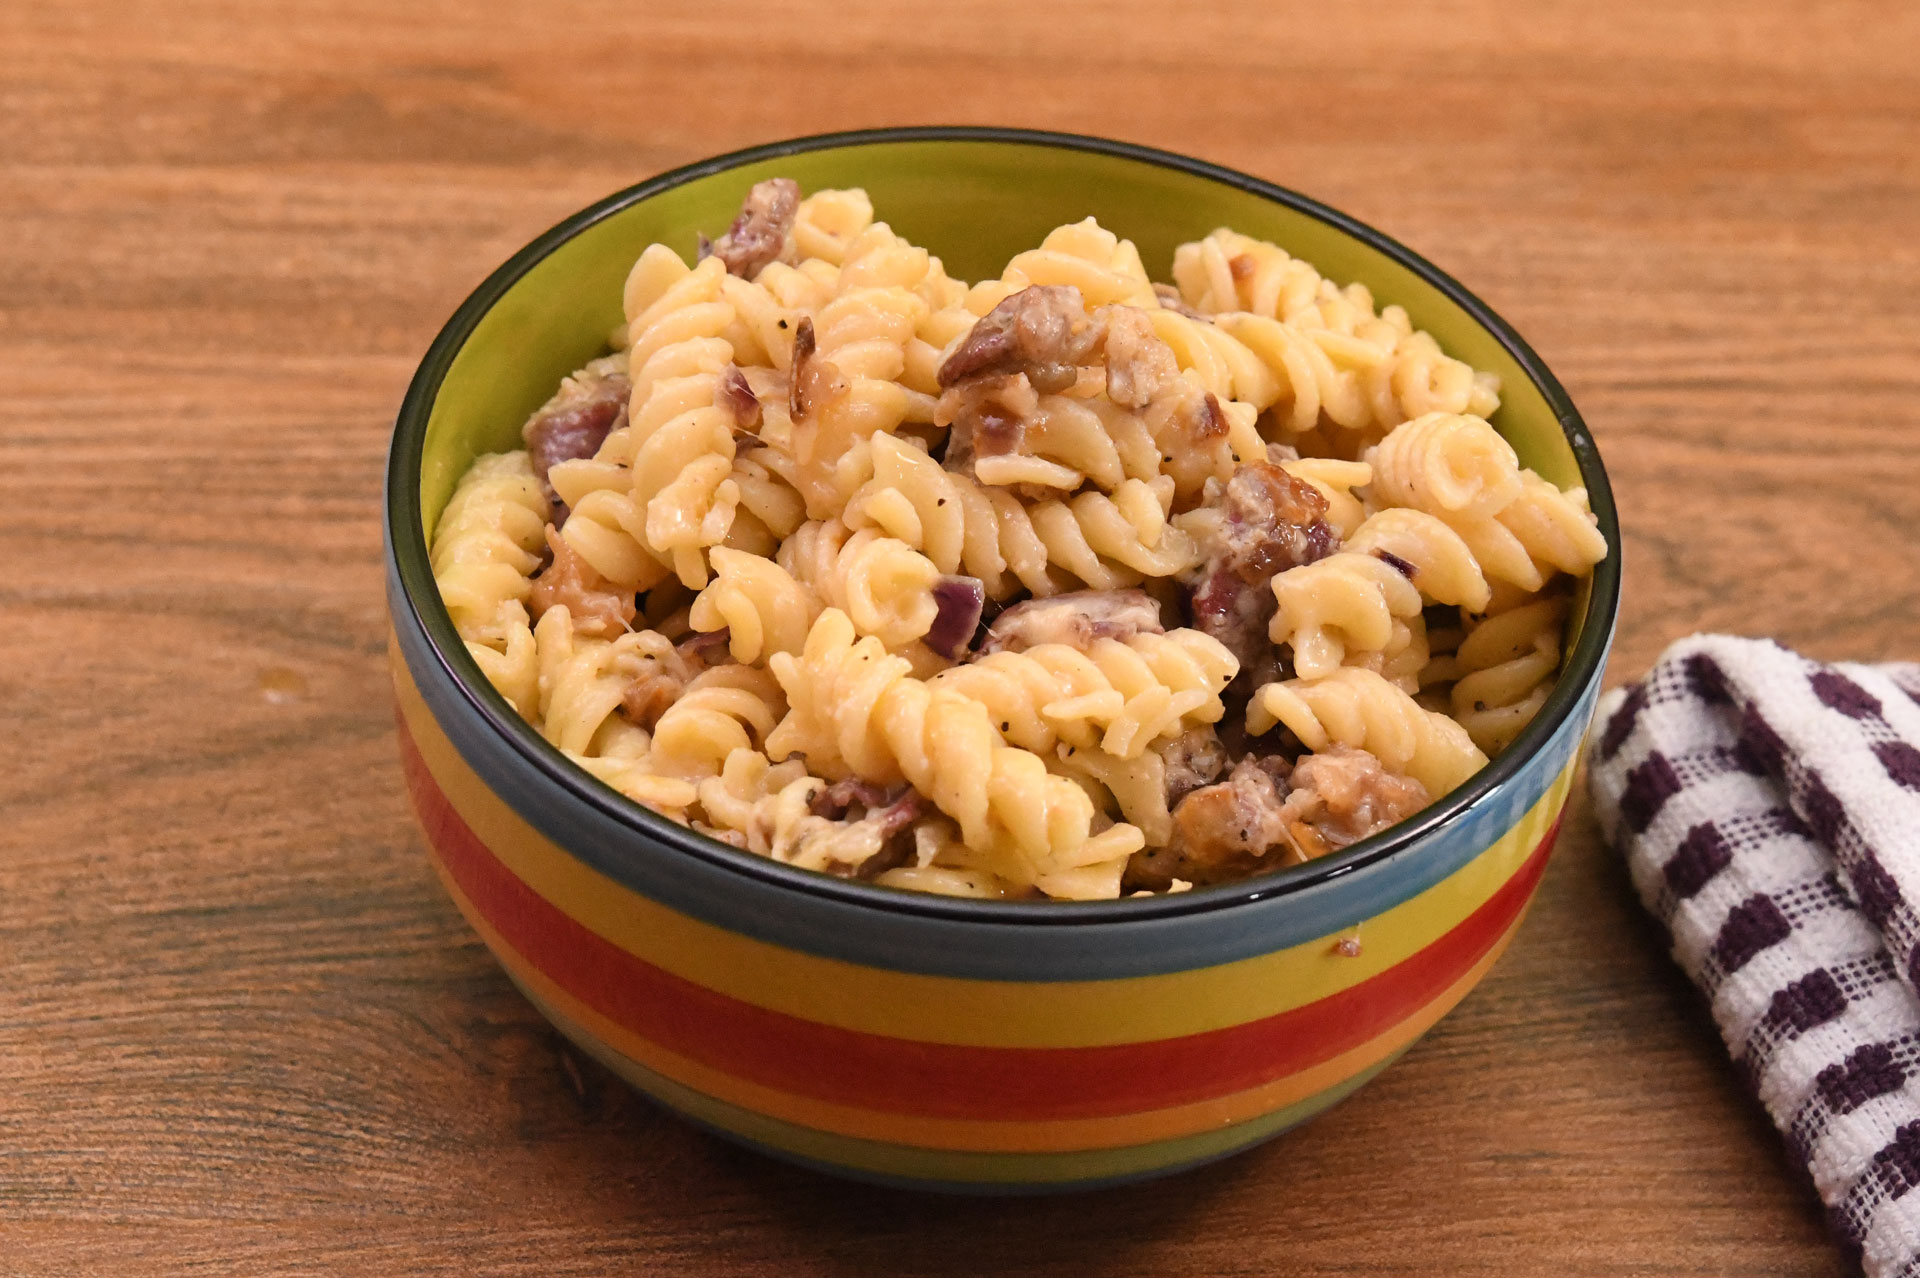 Bacon and Cheese pasta